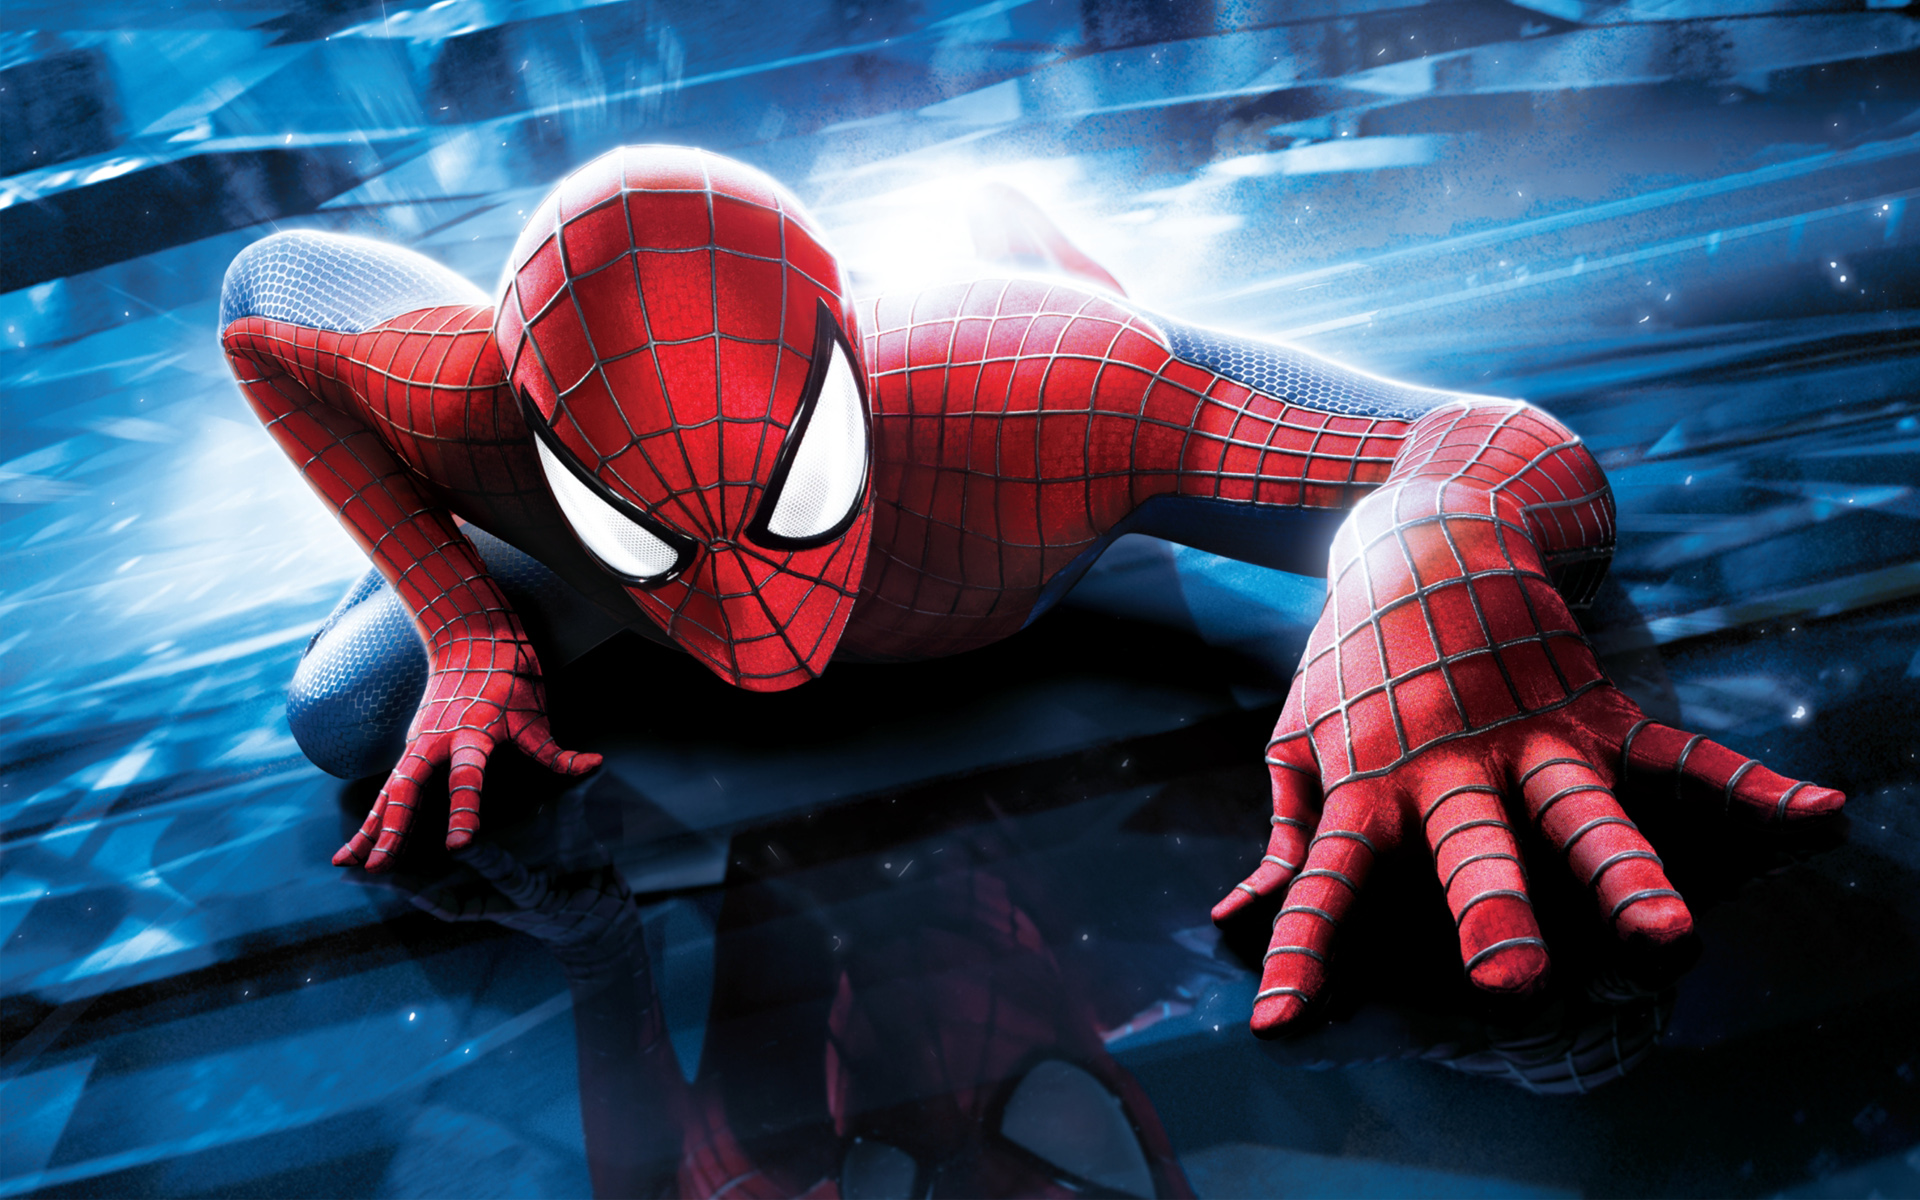 Spider-Man images SPIDEY HD wallpaper and background photos